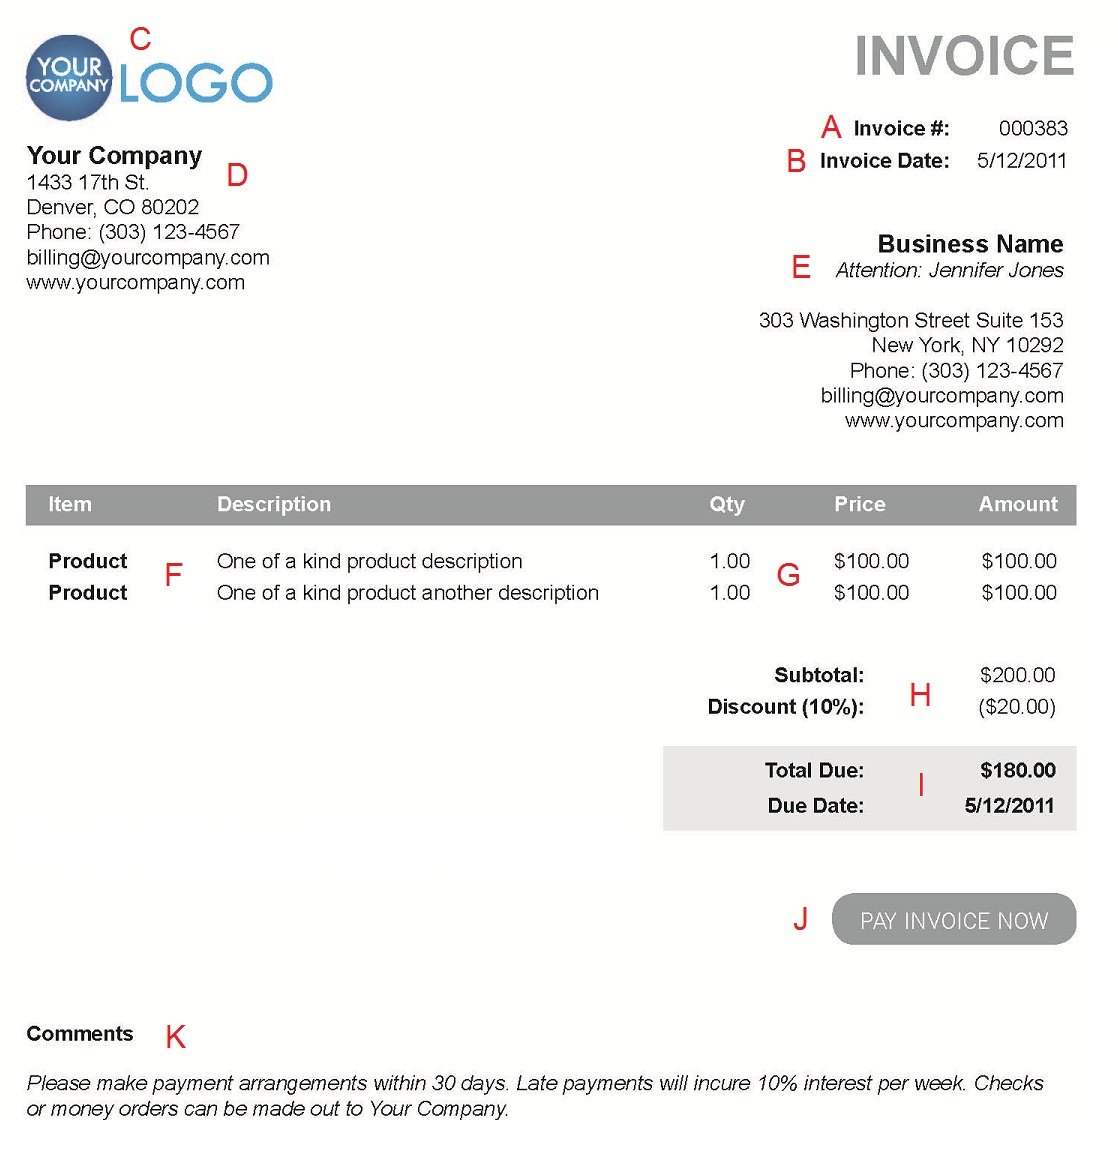 Aaaaeroincus  Picturesque The  Different Sections Of An Electronic Payment Invoice With Lovely A  With Amusing Free Printable Invoice Template Pdf Also Invoice Pdf Free In Addition Business Invoice Template Word And Electronic Invoice Payment As Well As Filling Out An Invoice Additionally Examples Of Billing Invoices From Paysimplecom With Aaaaeroincus  Lovely The  Different Sections Of An Electronic Payment Invoice With Amusing A  And Picturesque Free Printable Invoice Template Pdf Also Invoice Pdf Free In Addition Business Invoice Template Word From Paysimplecom